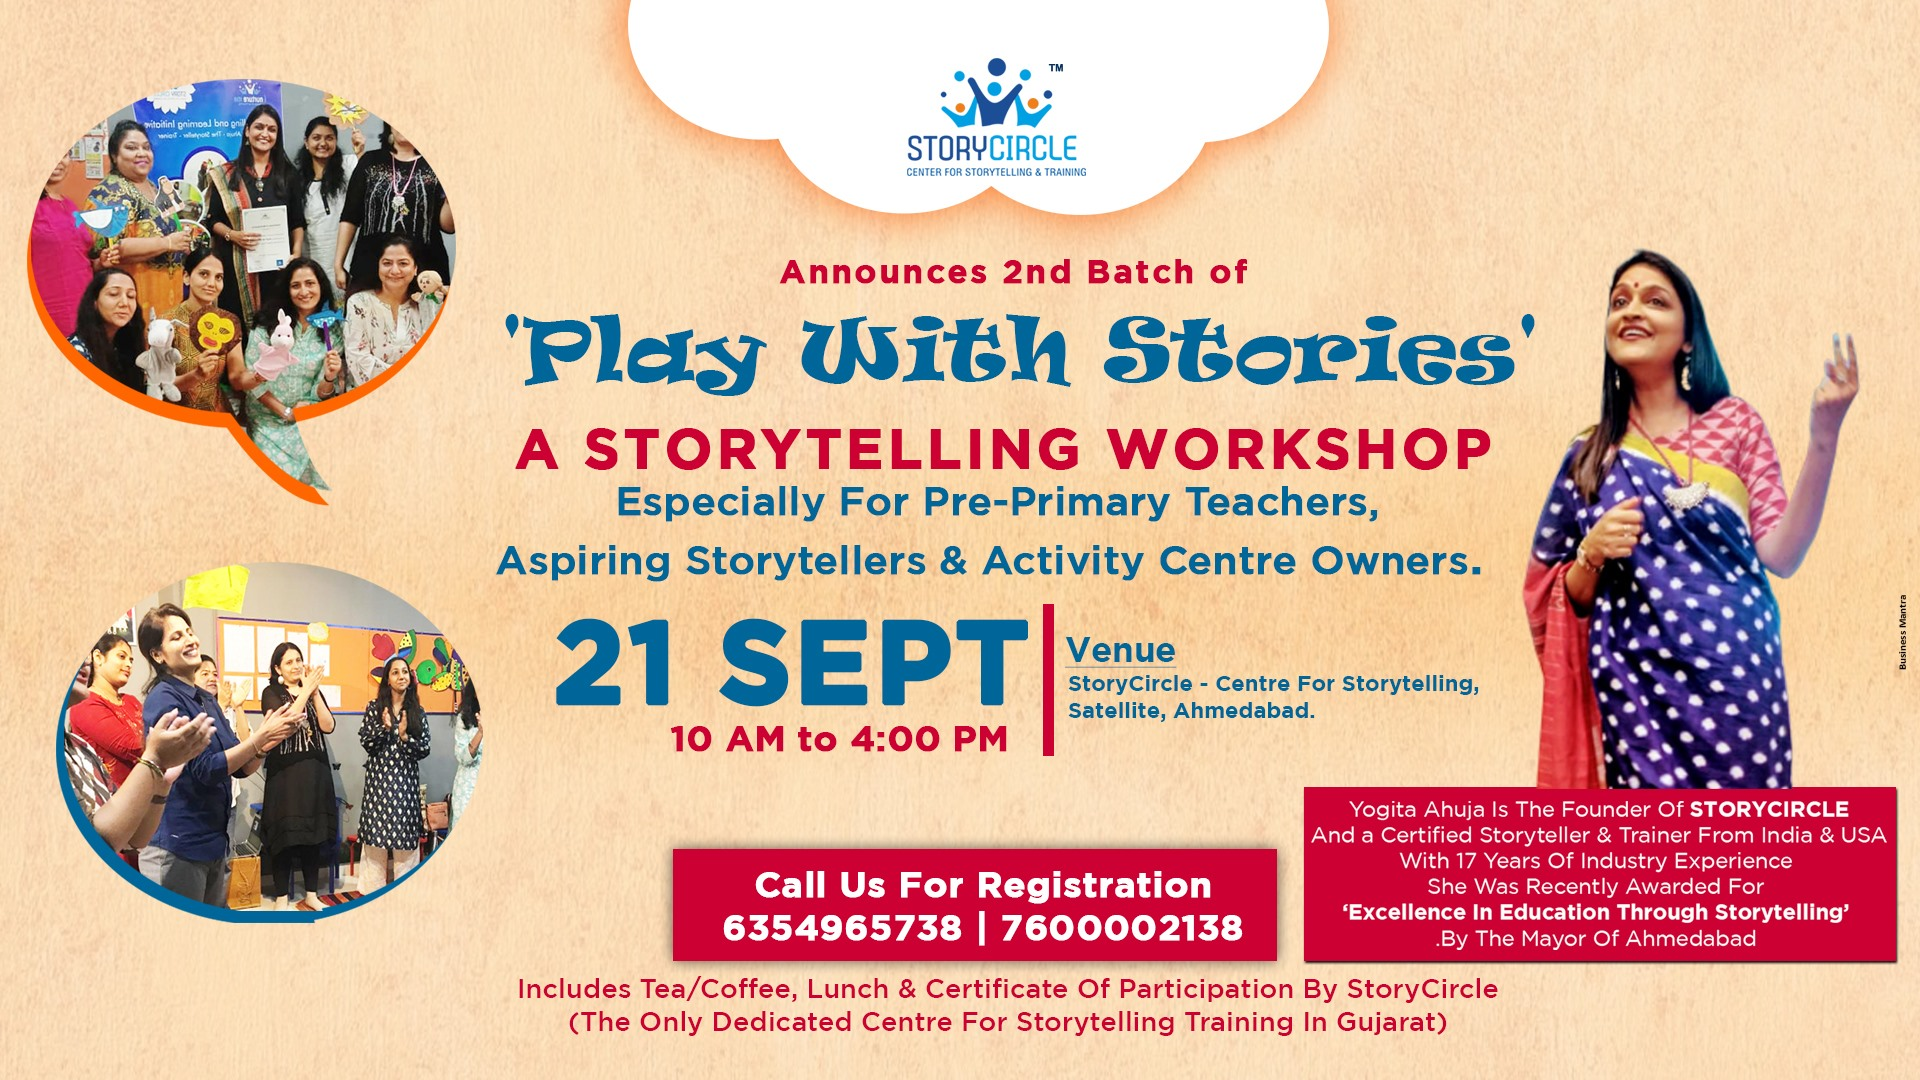 https://creativeyatra.com/wp-content/uploads/2019/09/Play-with-Stories-StoryTelling-Workshop-for-Adults-Batch-2.jpg